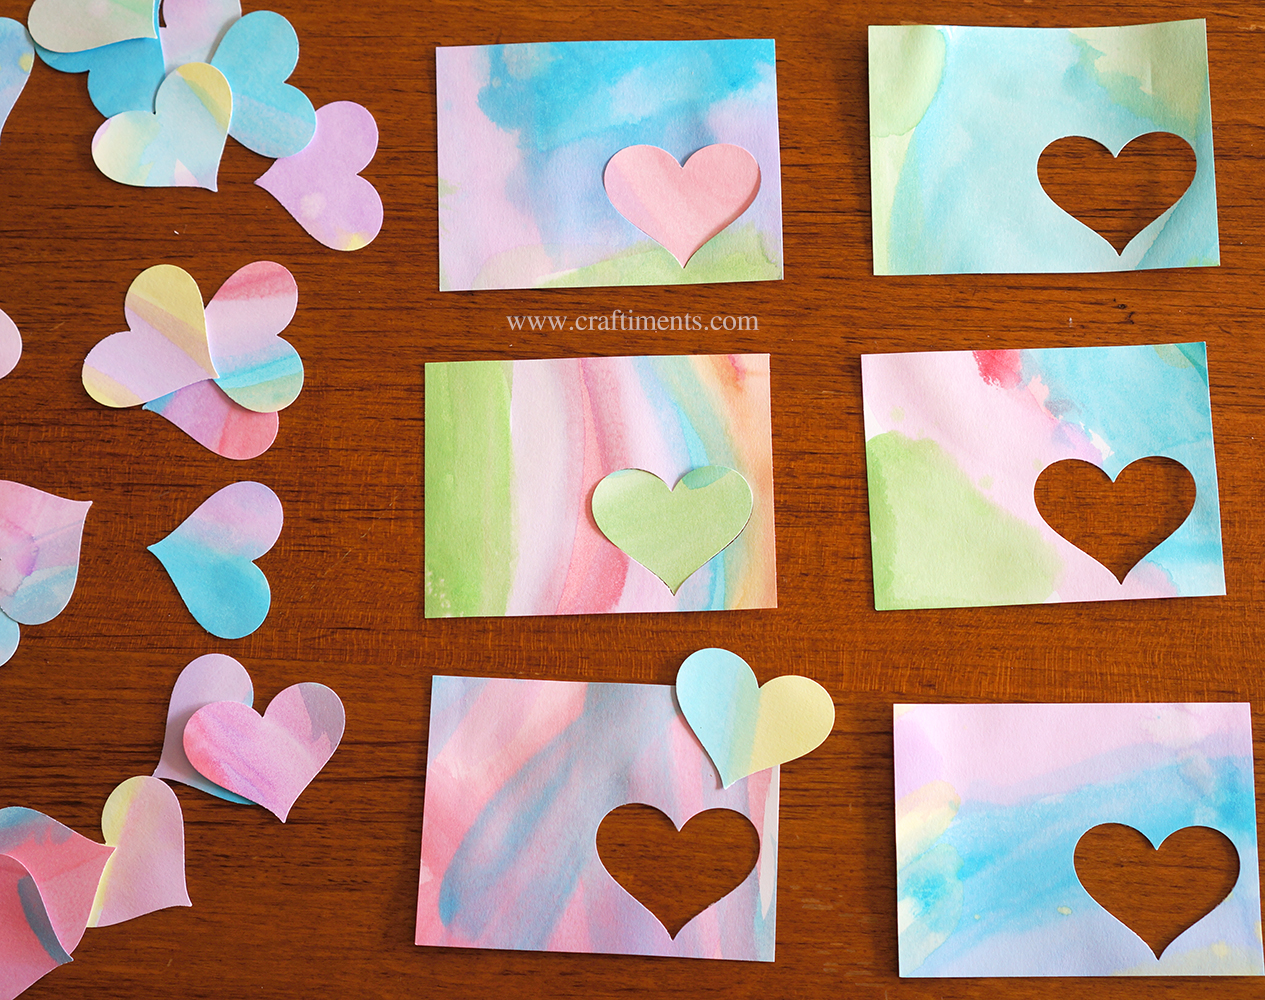 Mix and match hearts